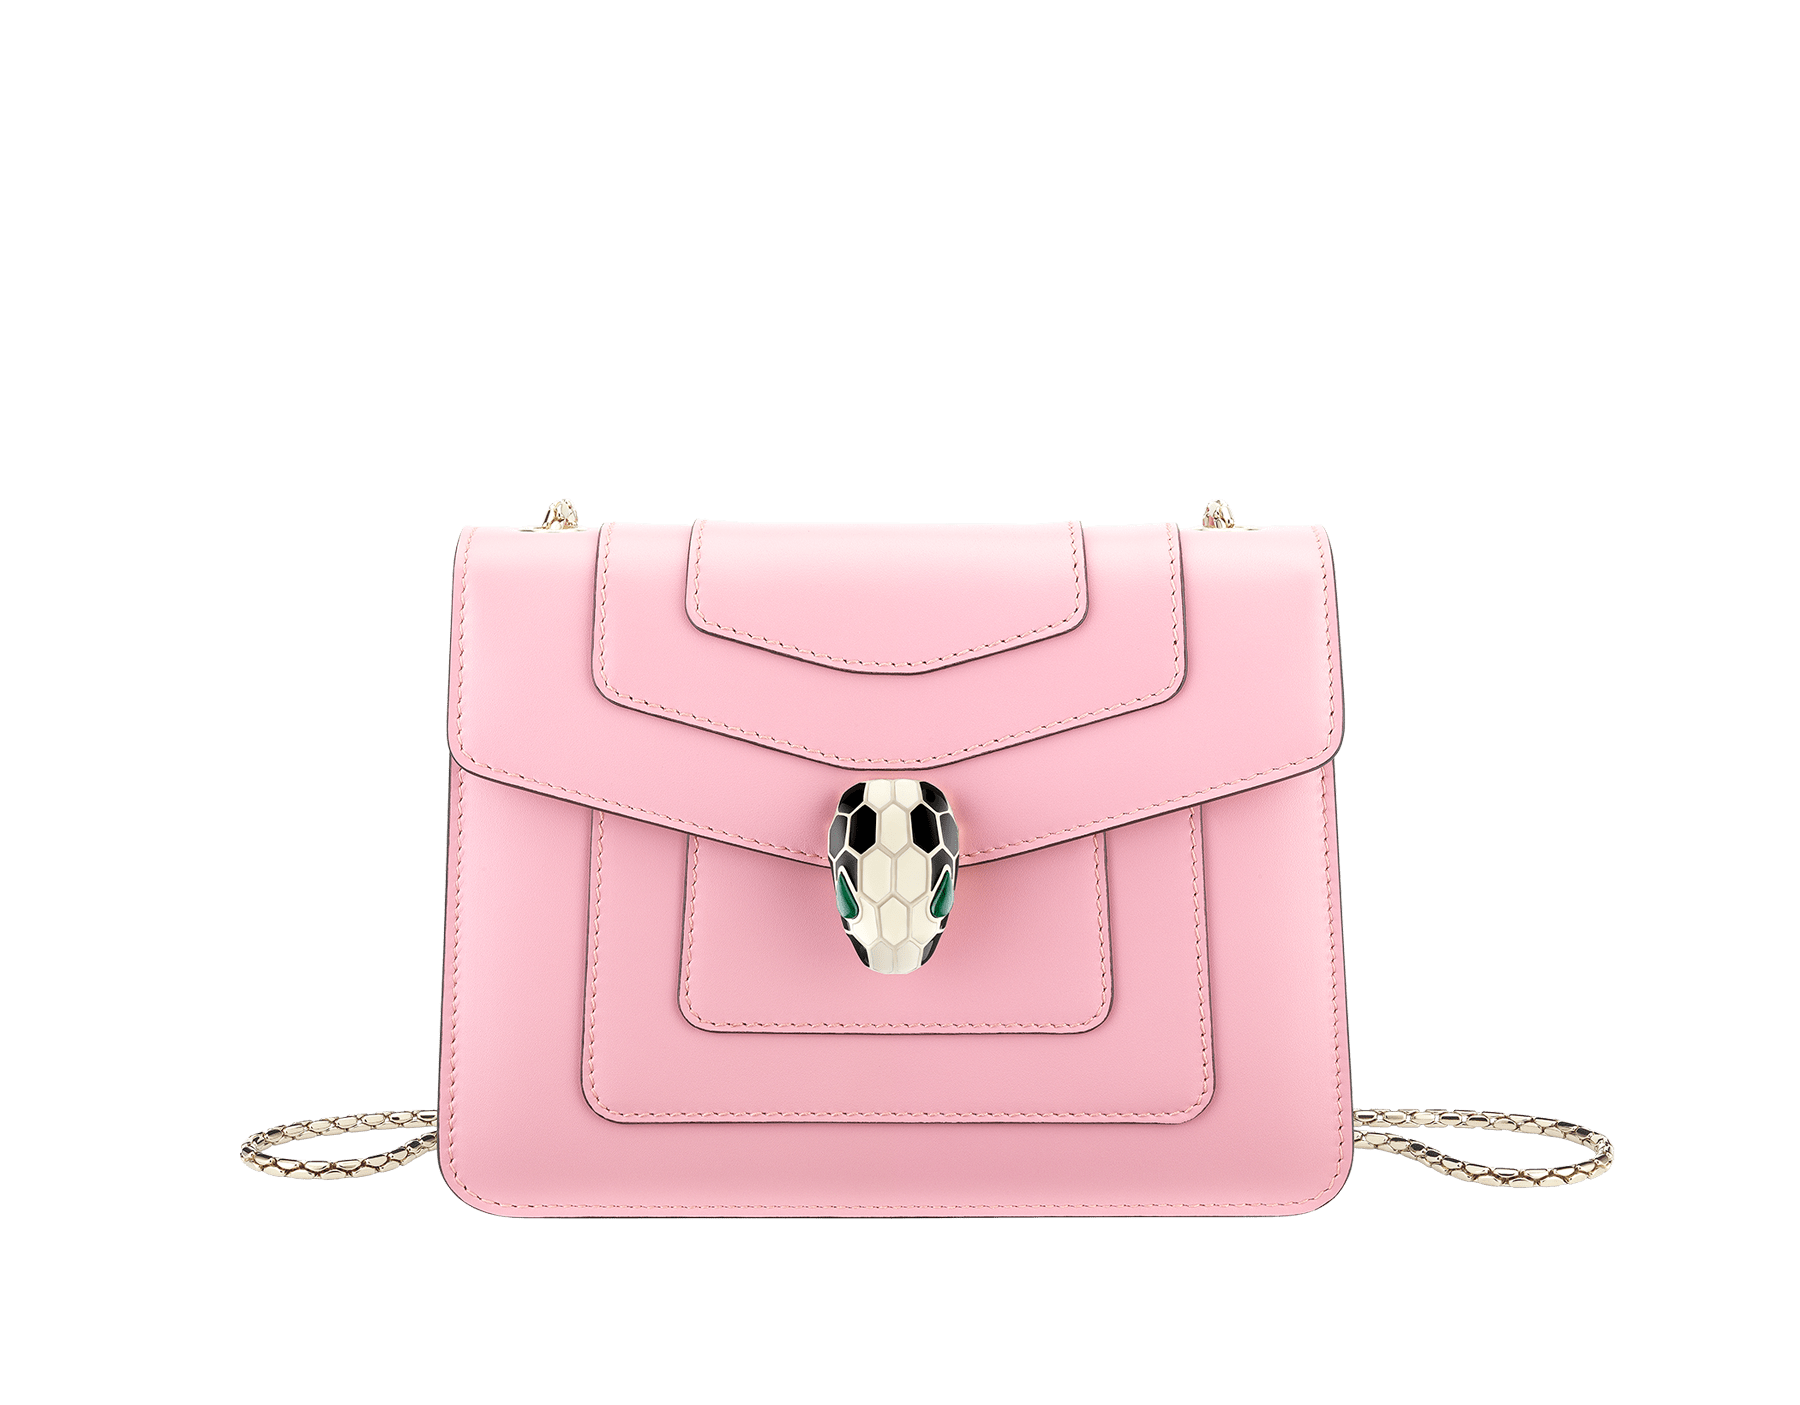 Serpenti Forever crossbody bag in sea star coral smooth calf leather. Snakehead closure in light gold plated brass decorated with black and white enamel, and green malachite eyes. 422-CLb image 1